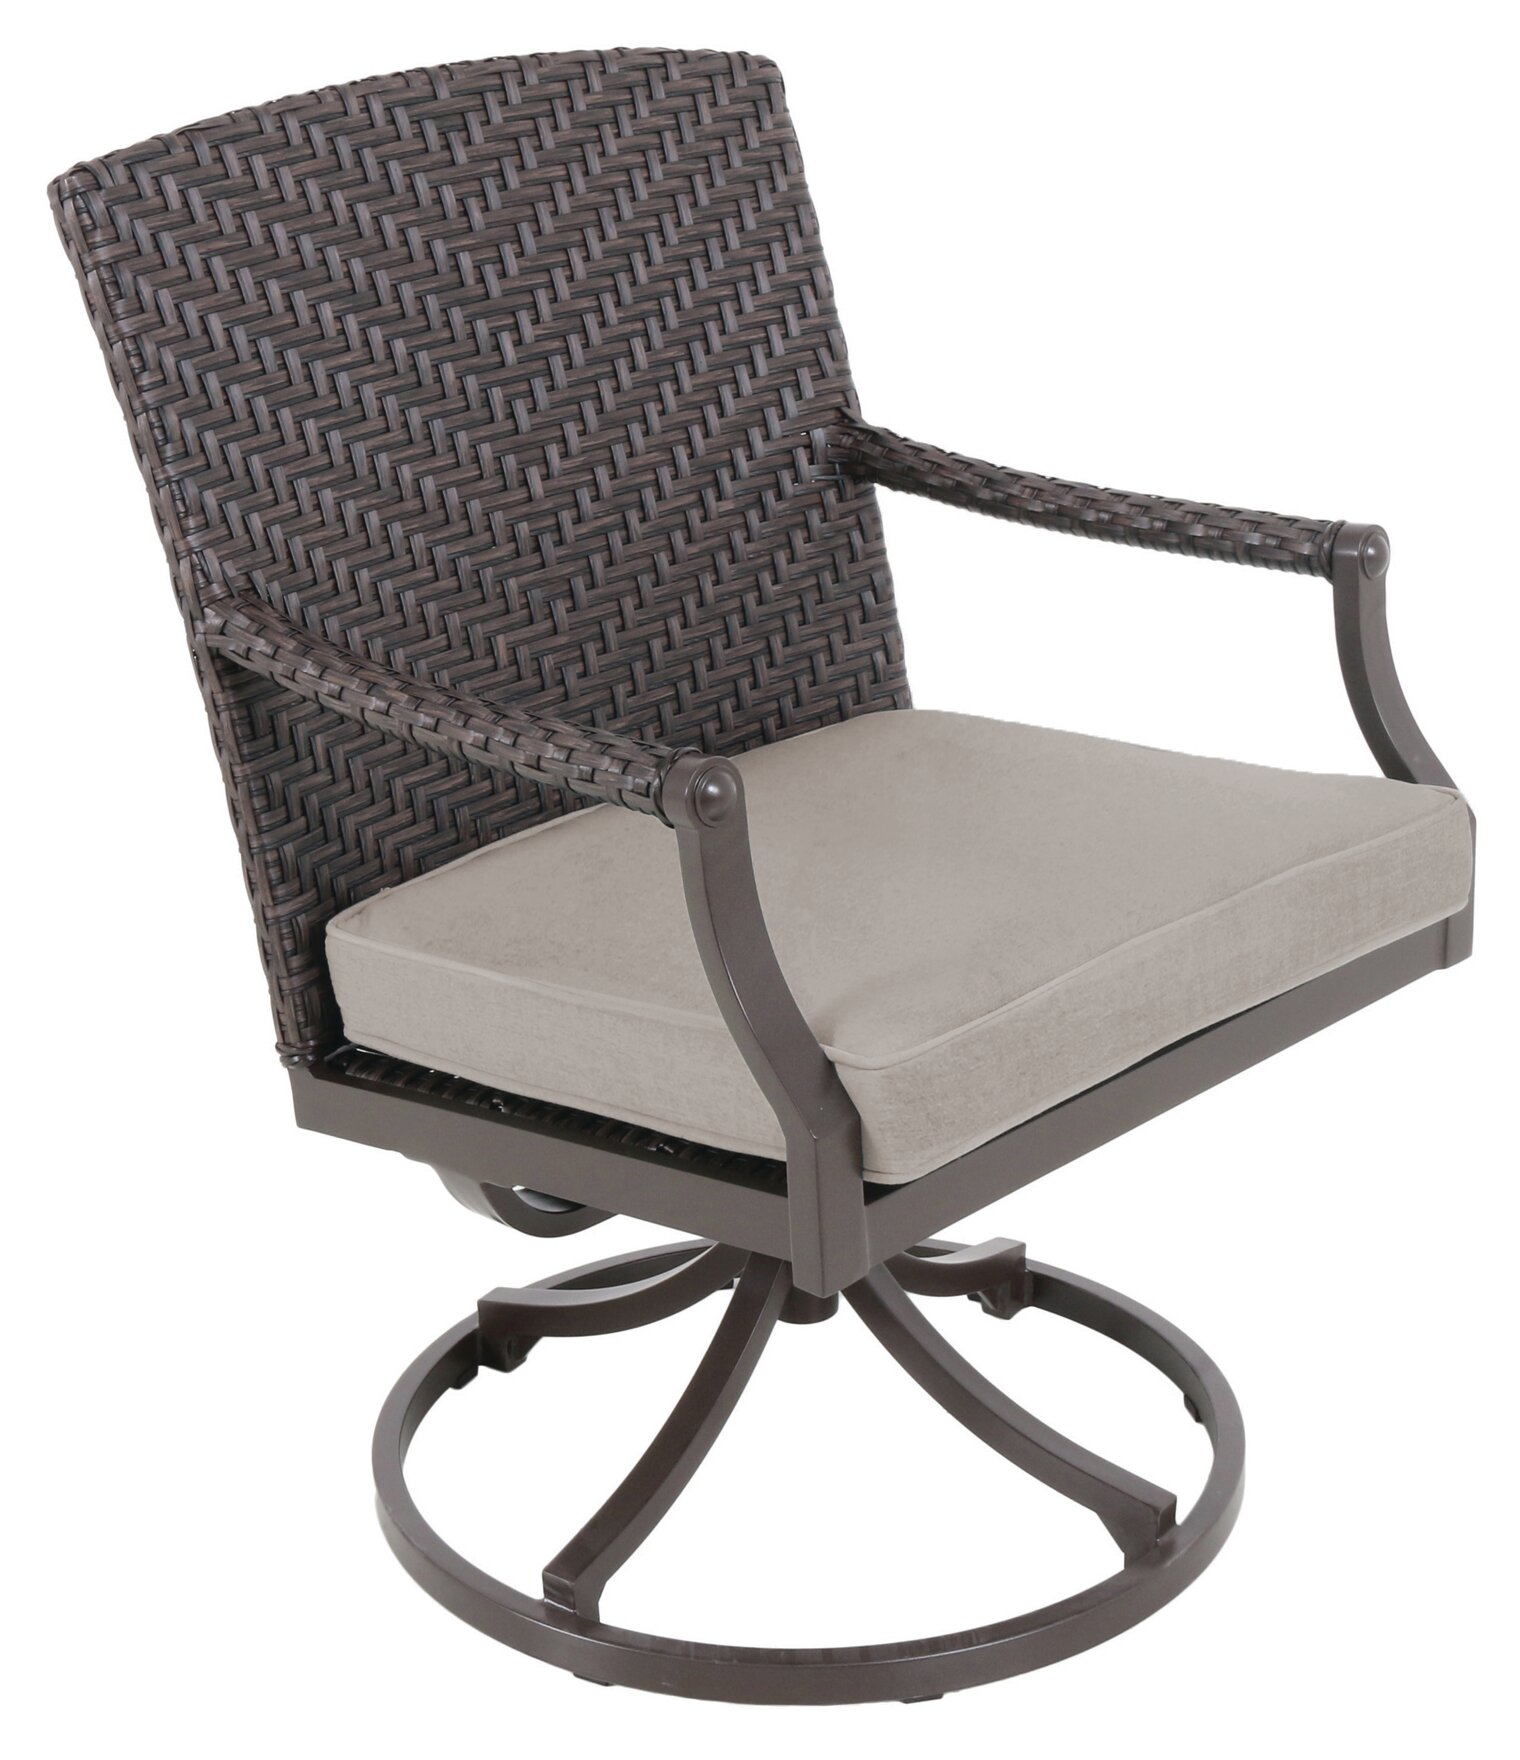 Red Barrel Studio Kanzler Aluminum Outdoor Wicker Swivel Patio Dining Chair with Cushion | Wayfair  sc 1 st  Wayfair & Red Barrel Studio Kanzler Aluminum Outdoor Wicker Swivel Patio ...